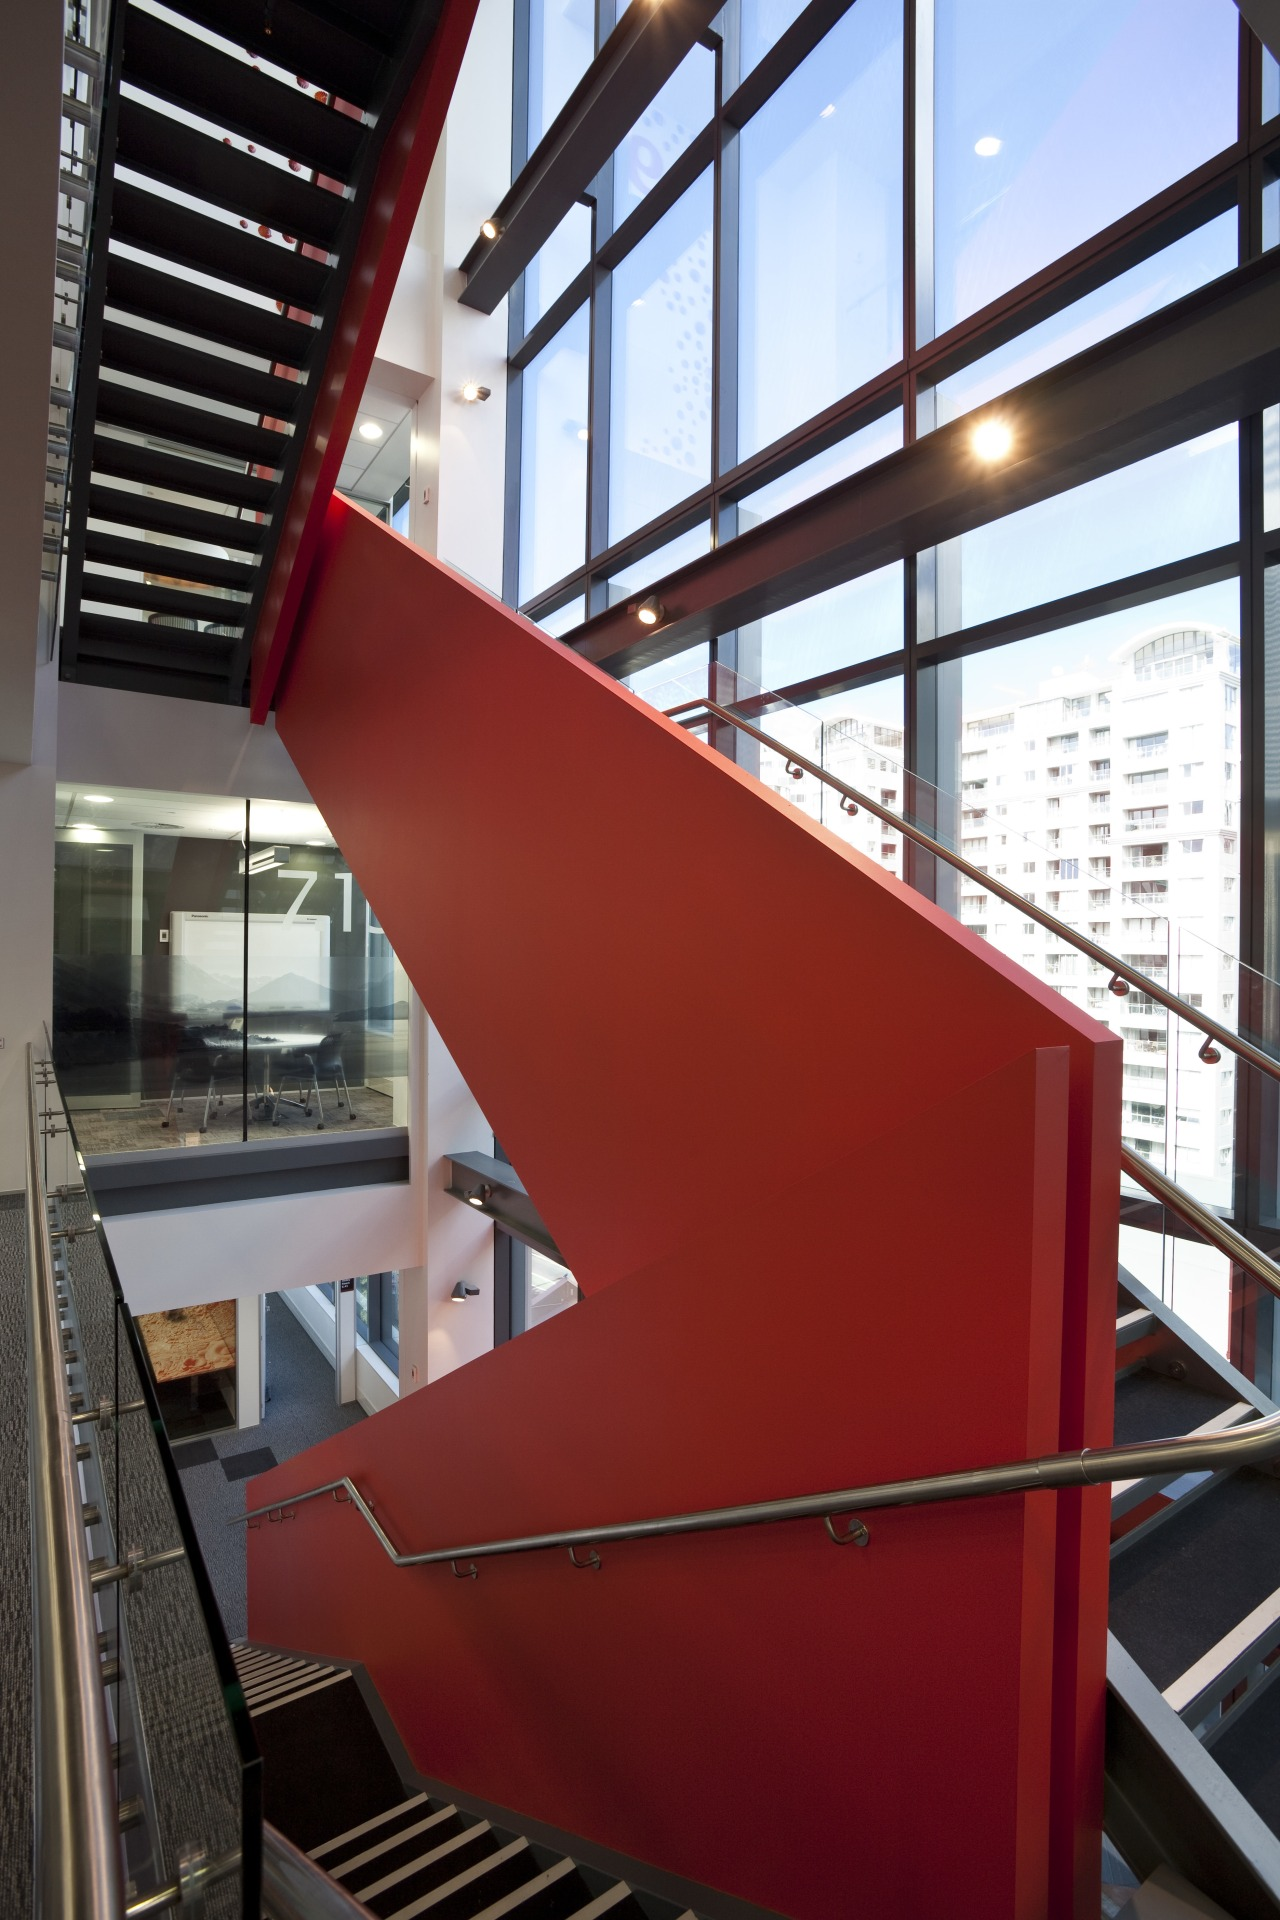 View of stairway with red wall at the architecture, building, daylighting, glass, handrail, line, stairs, structure, red